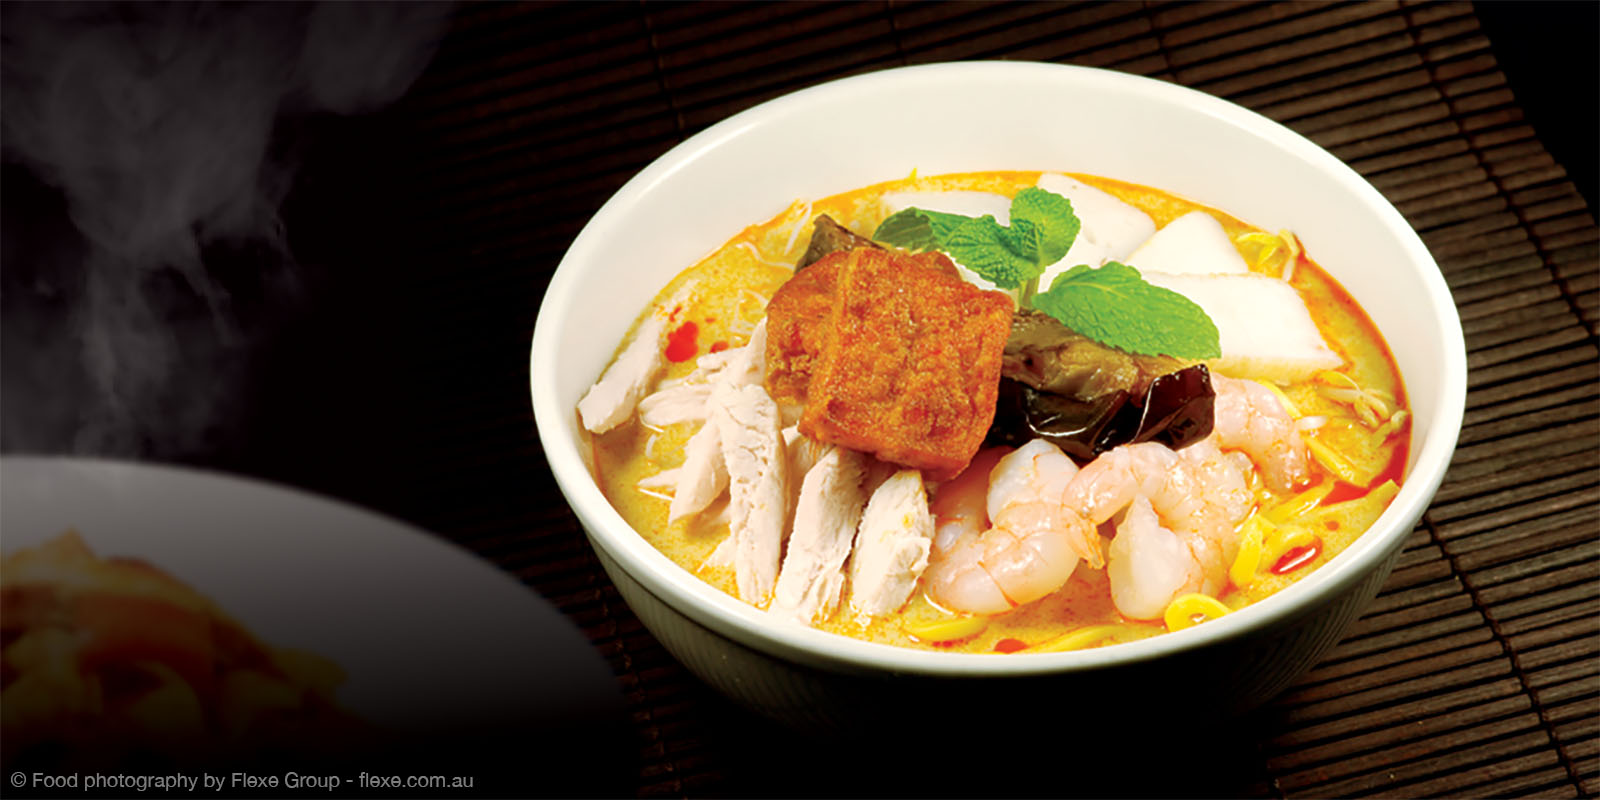 Chef Lagenda - Food Photography by Flexe Group - Laksa